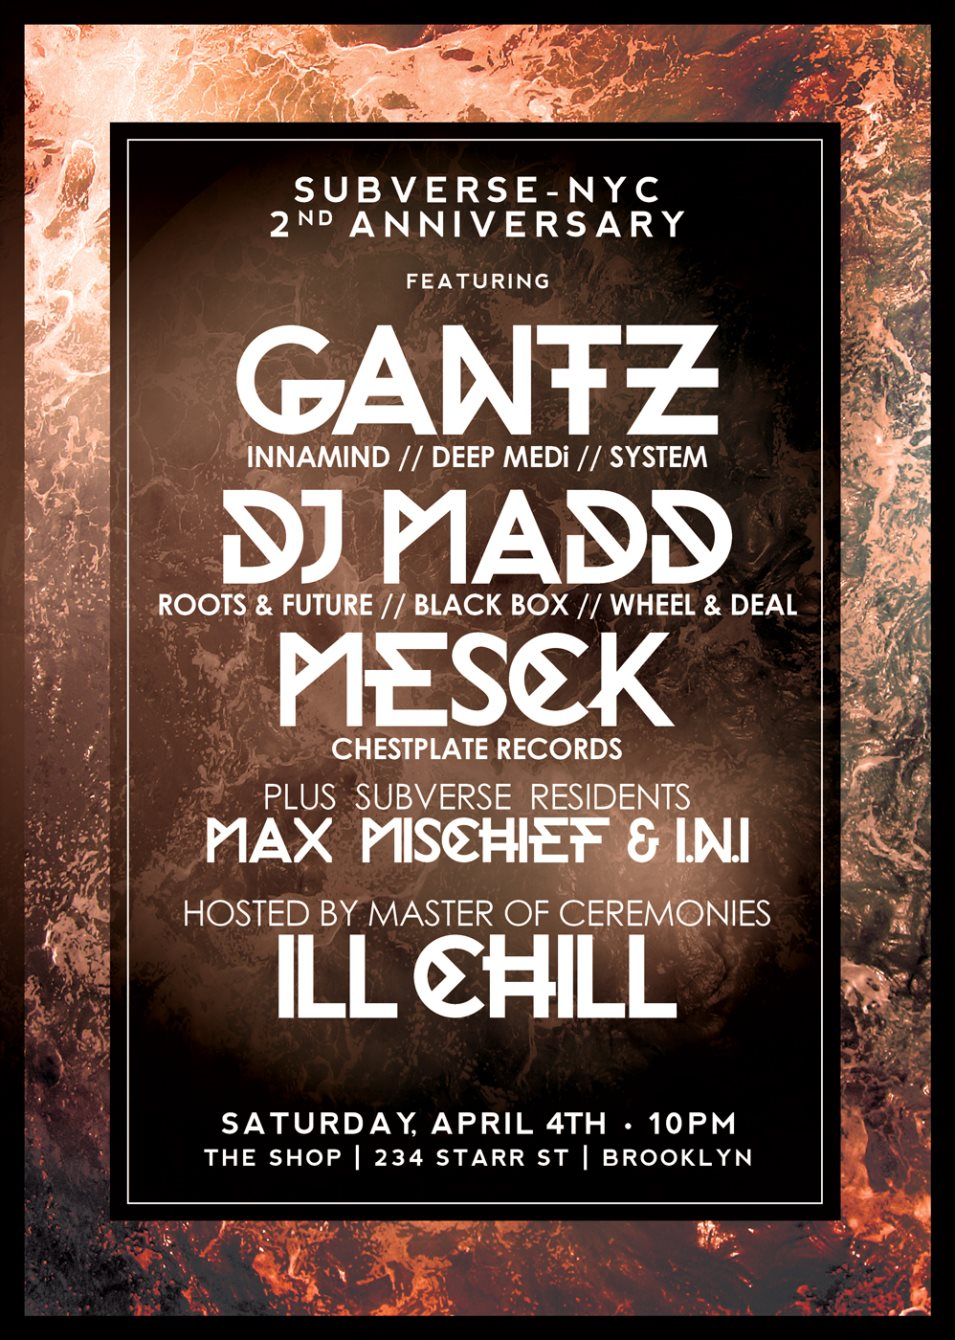 Subverse-NYC 2nd Anniversary Feat. Gantz, DJ Madd, & Mesck, Hosted by Ill Chill - Flyer front